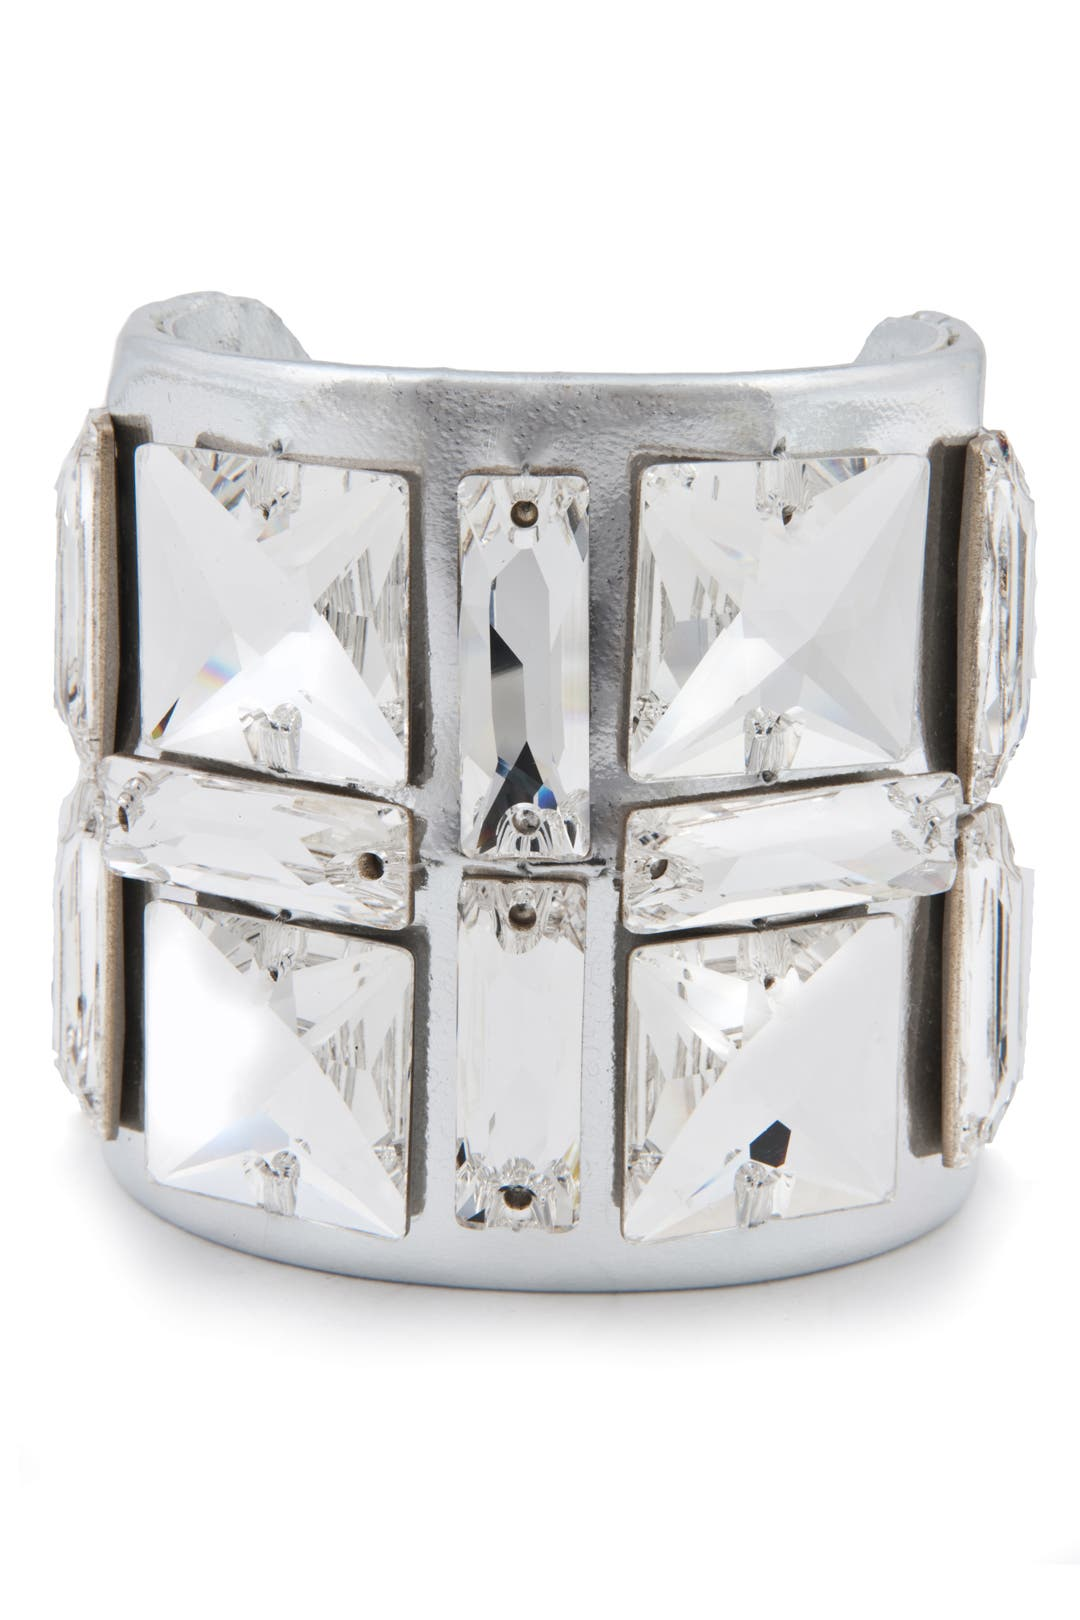 Mirror Grid Cuff by Ted Rossi